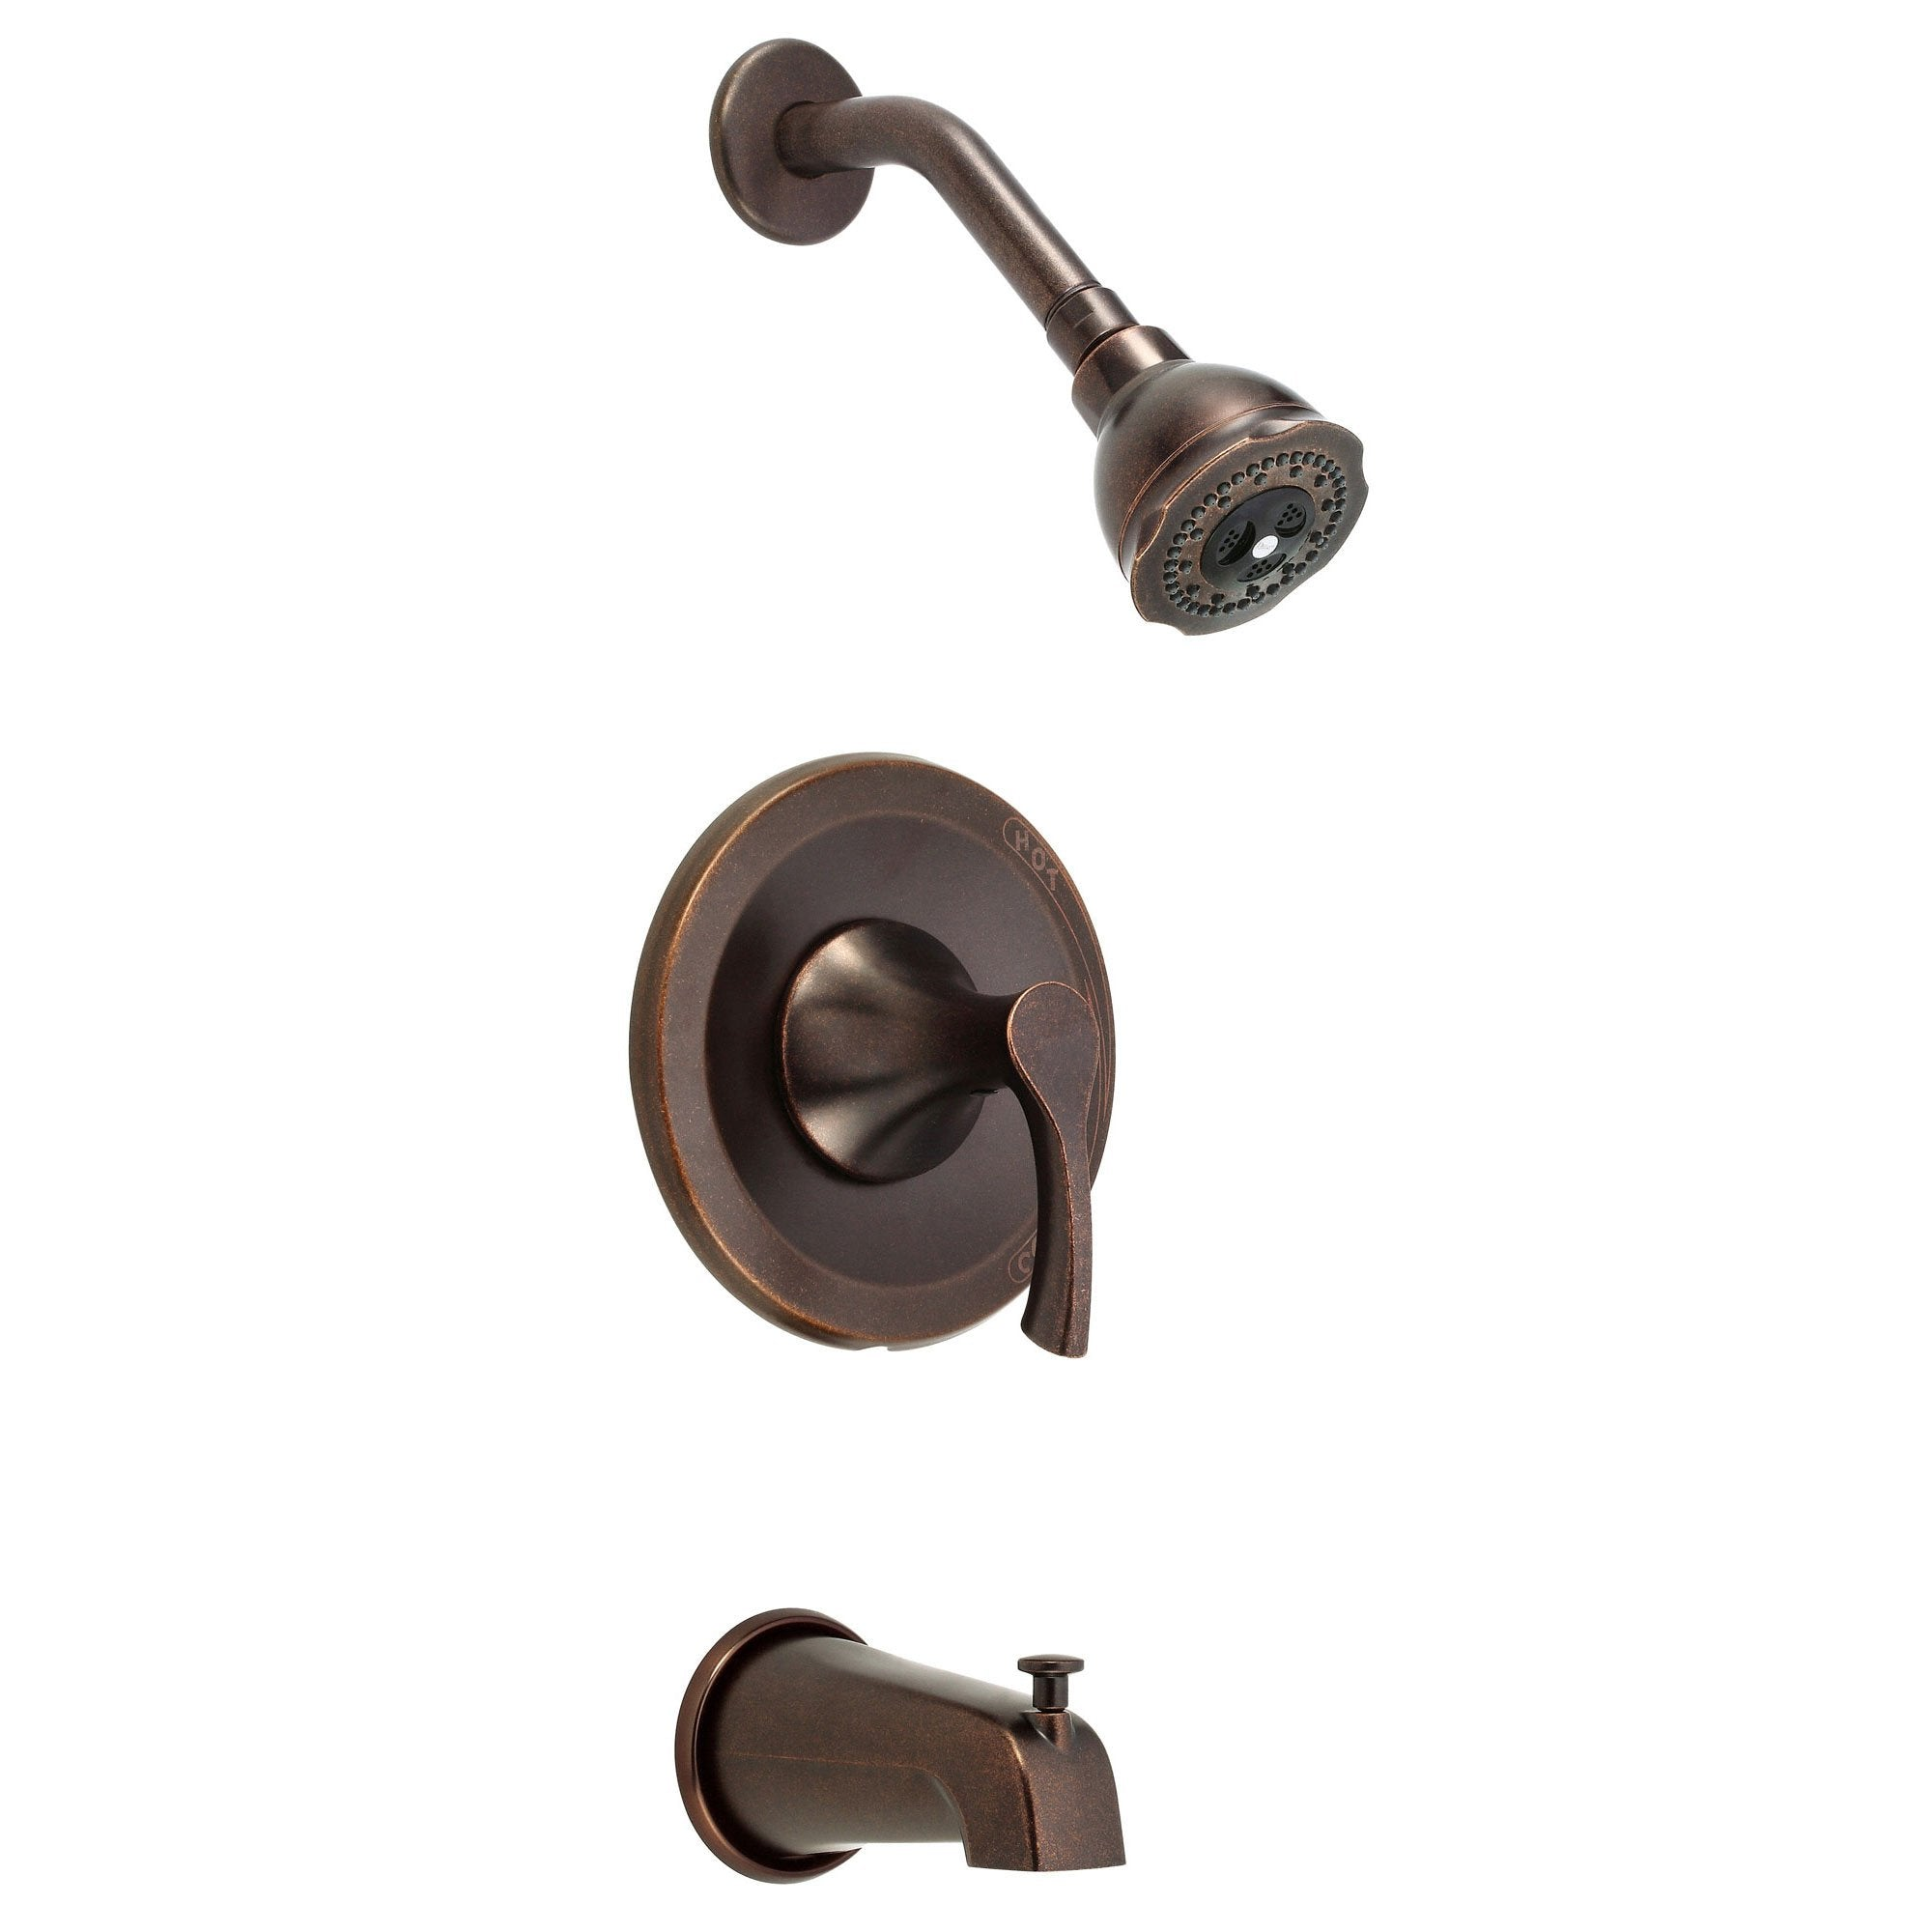 Danze Antioch Tumbled Bronze Single Handle Tub and Shower Combo Faucet INCLUDES Rough-in Valve